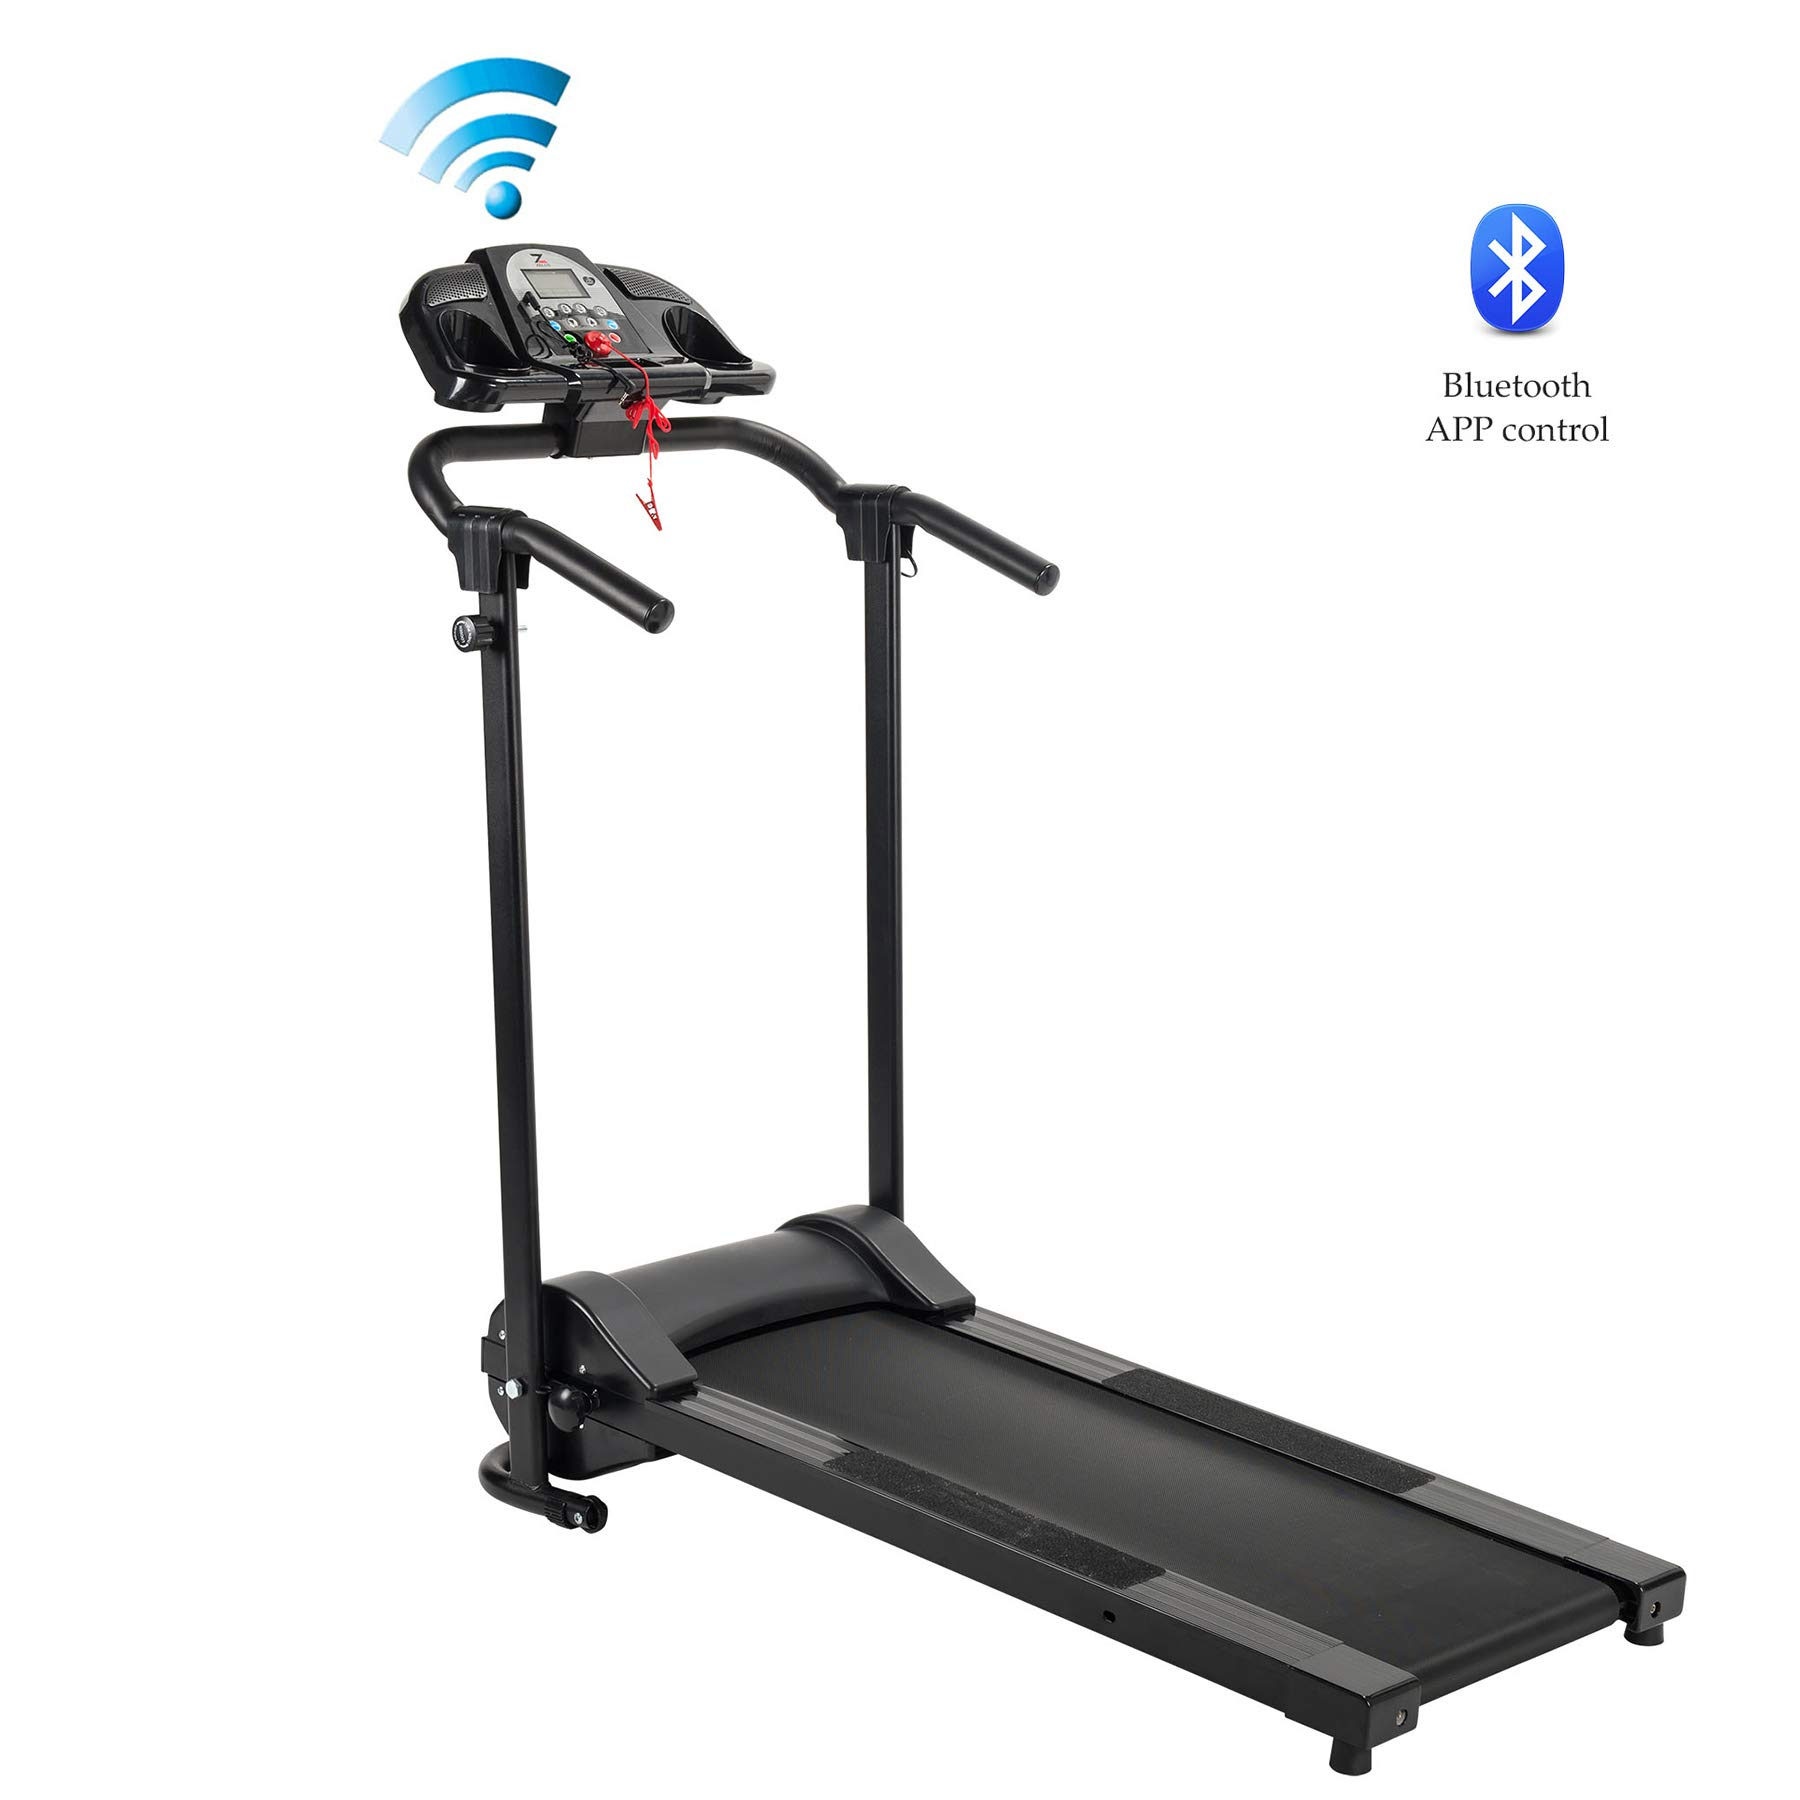 ZELUS Folding Treadmill Electric Motorized Running Machine with Downloadable Sports App Control Walking and Running, Cup Holder, MP3 Player and Wheels Easy (Treadmill with APP Control)